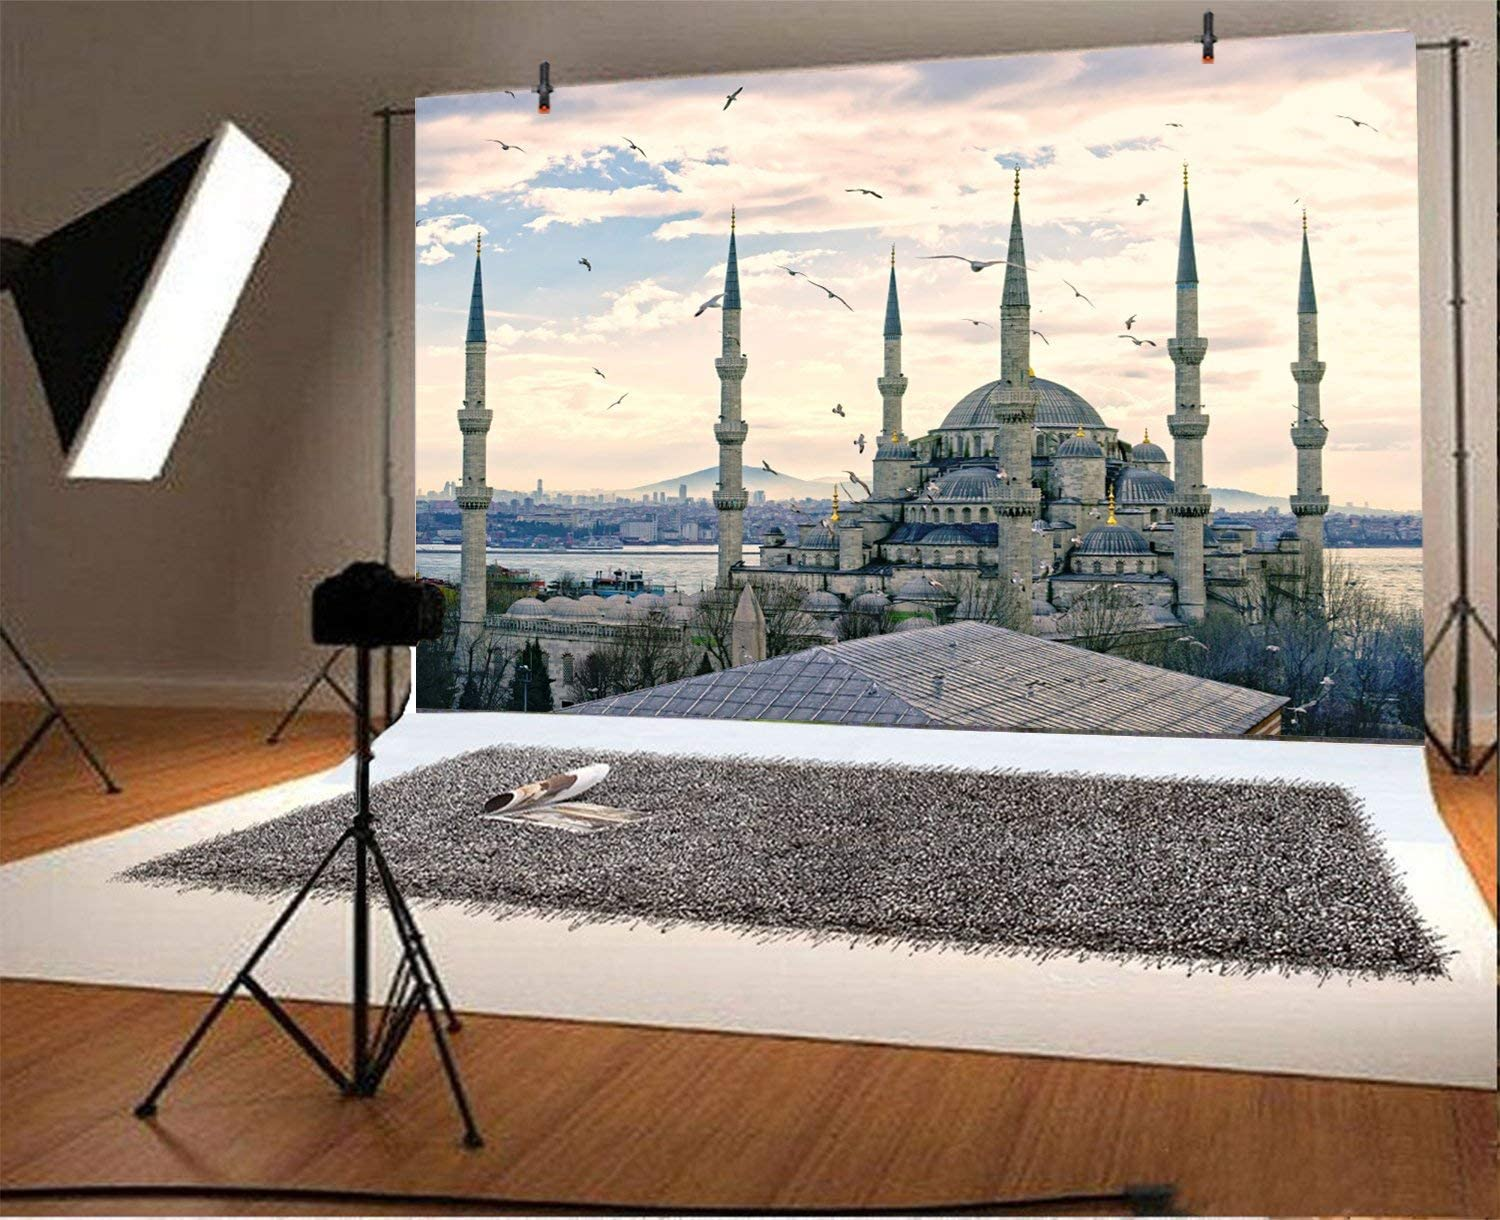 GoEoo 5x3ft Polyester Blue Mosque in Turkey Backdrop Famous Sites Photography Background World Famous Scenery Religious Belief Indoor Decors Wallpaper Photo Studio No Wrinkle